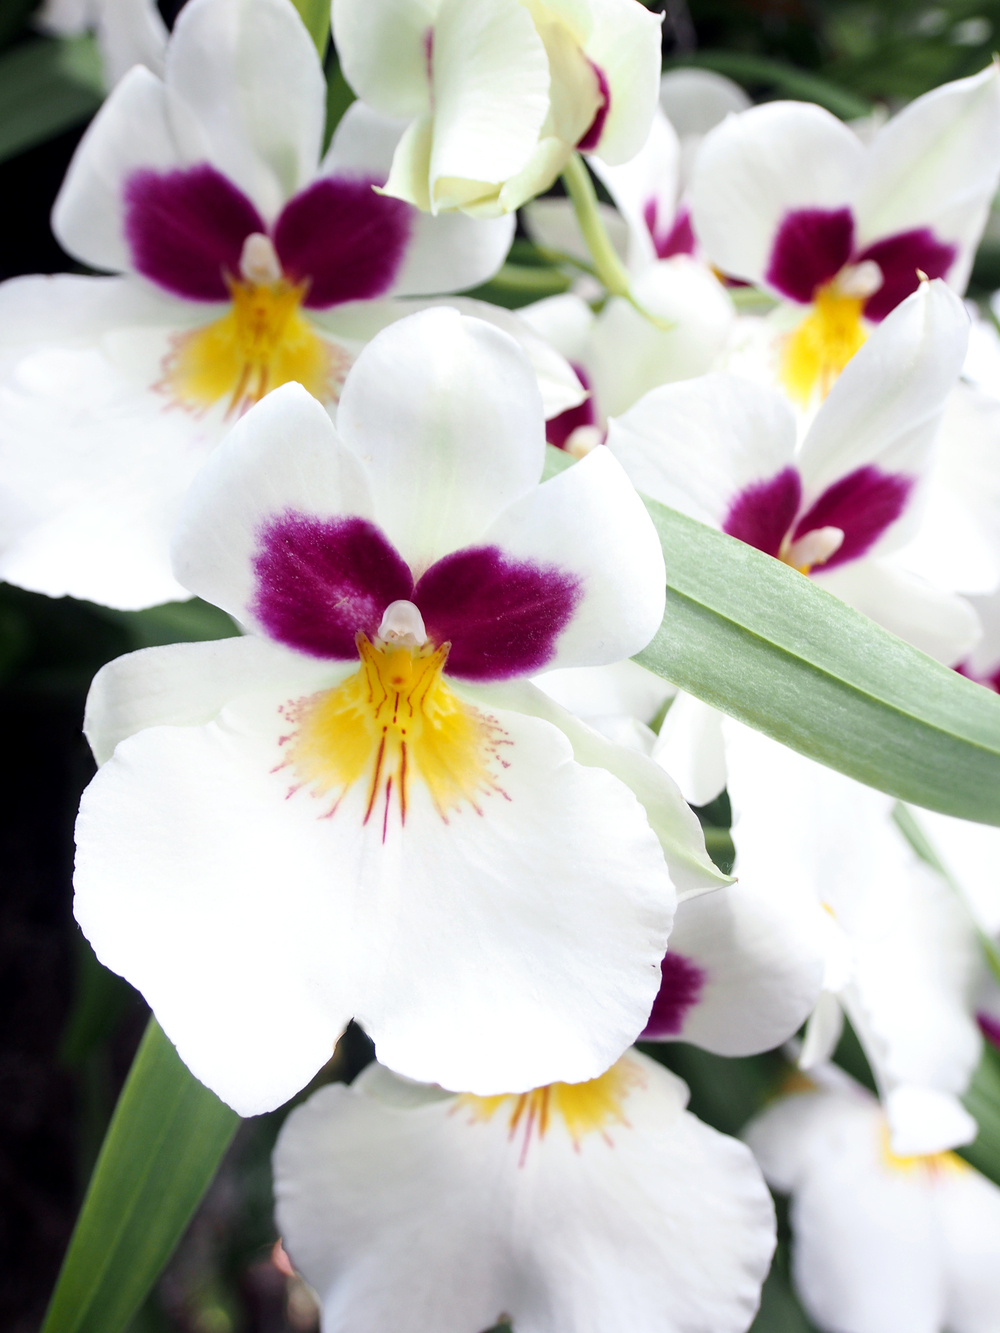 Detail of these tinier white, yellow & magenta orchids.